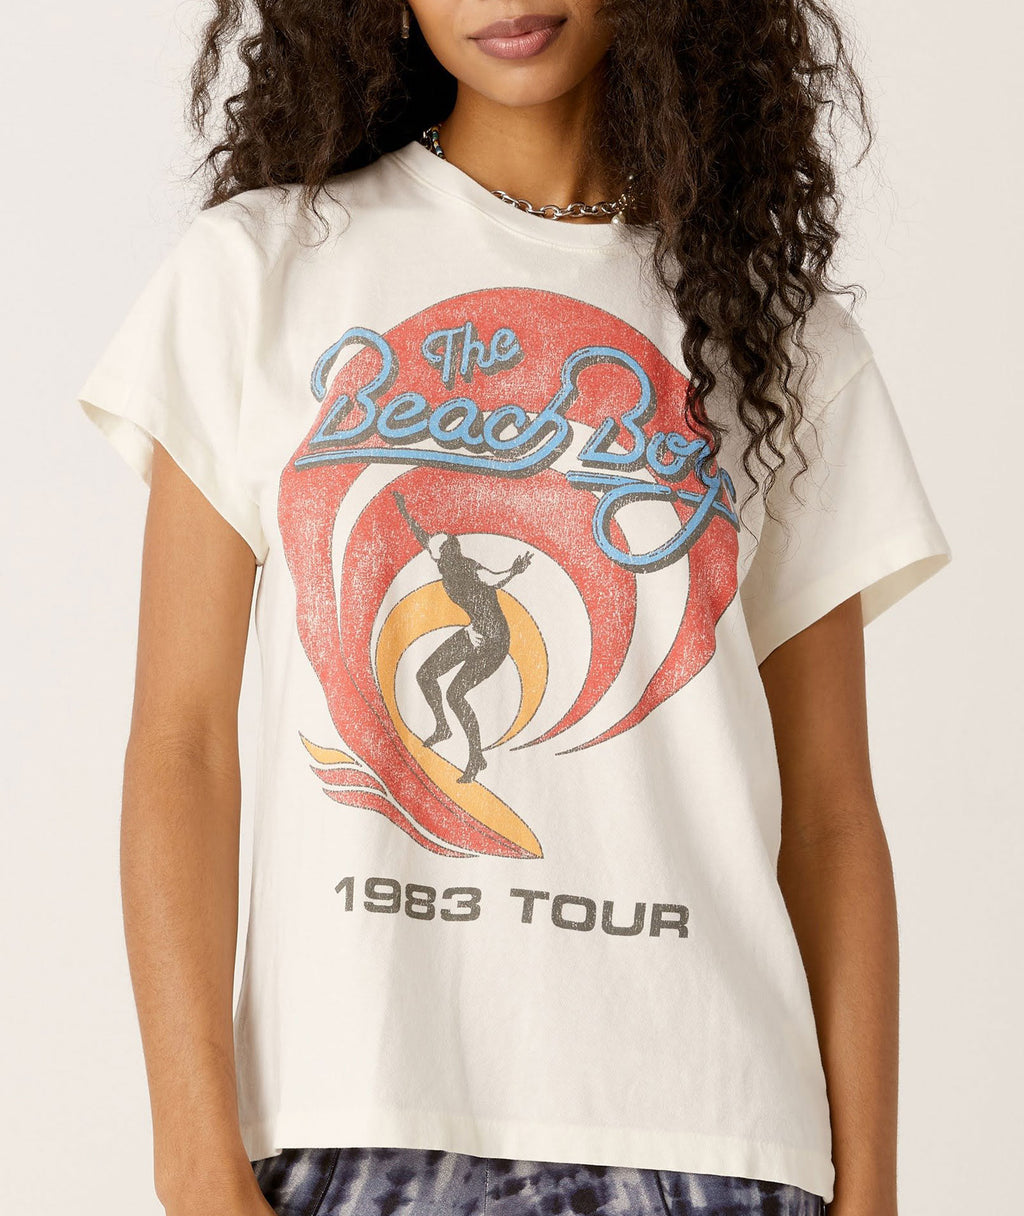 Daydreamer Women Beach Boys 1983 Tour Sun Tee